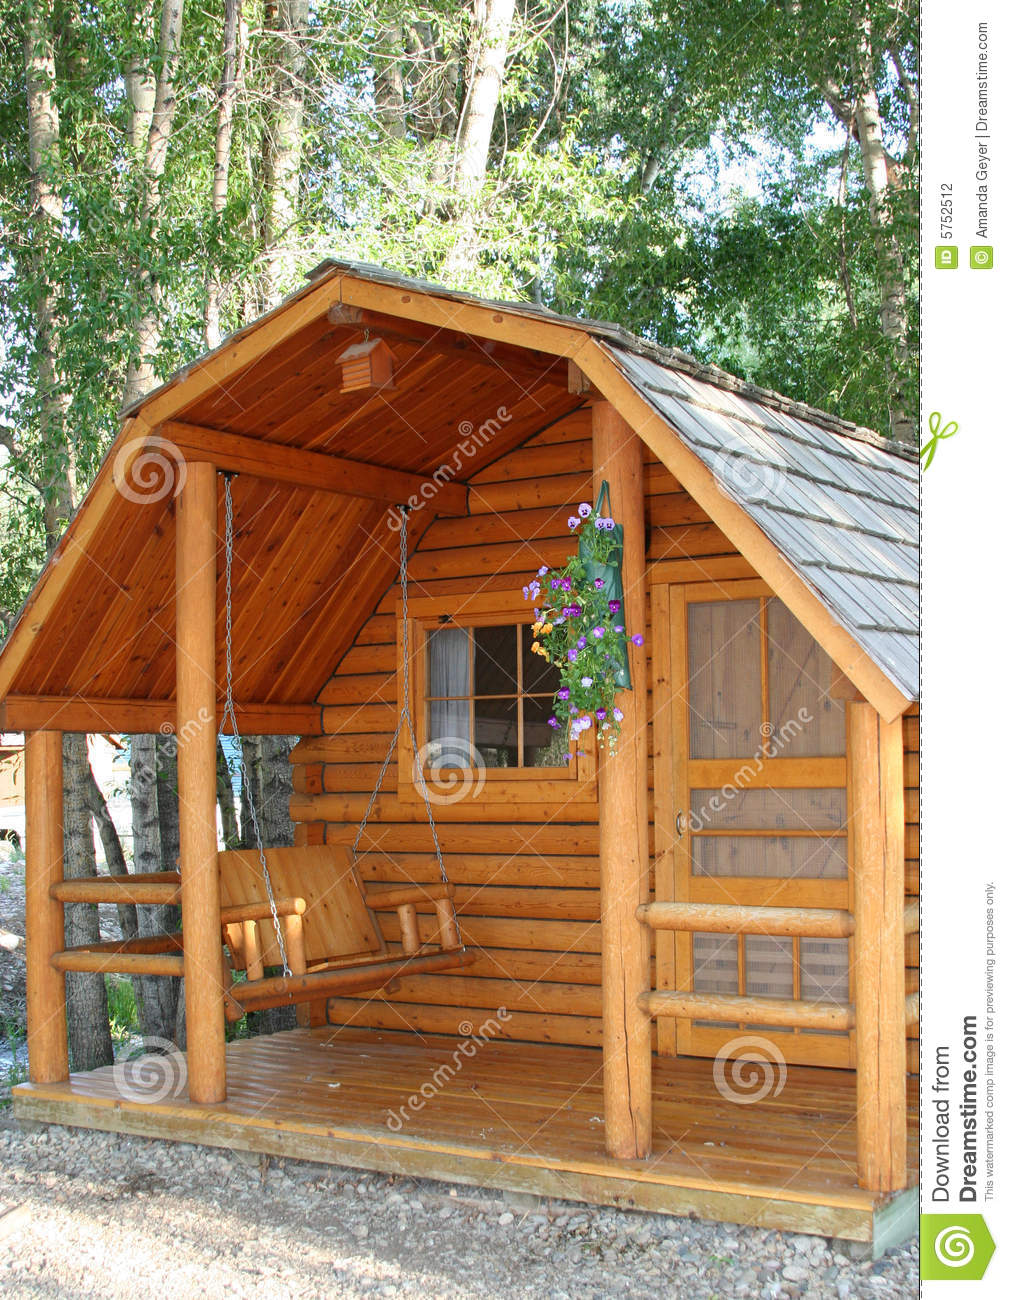 Small wood cabin stock photo image of home vacation for Tiny house cabin plans